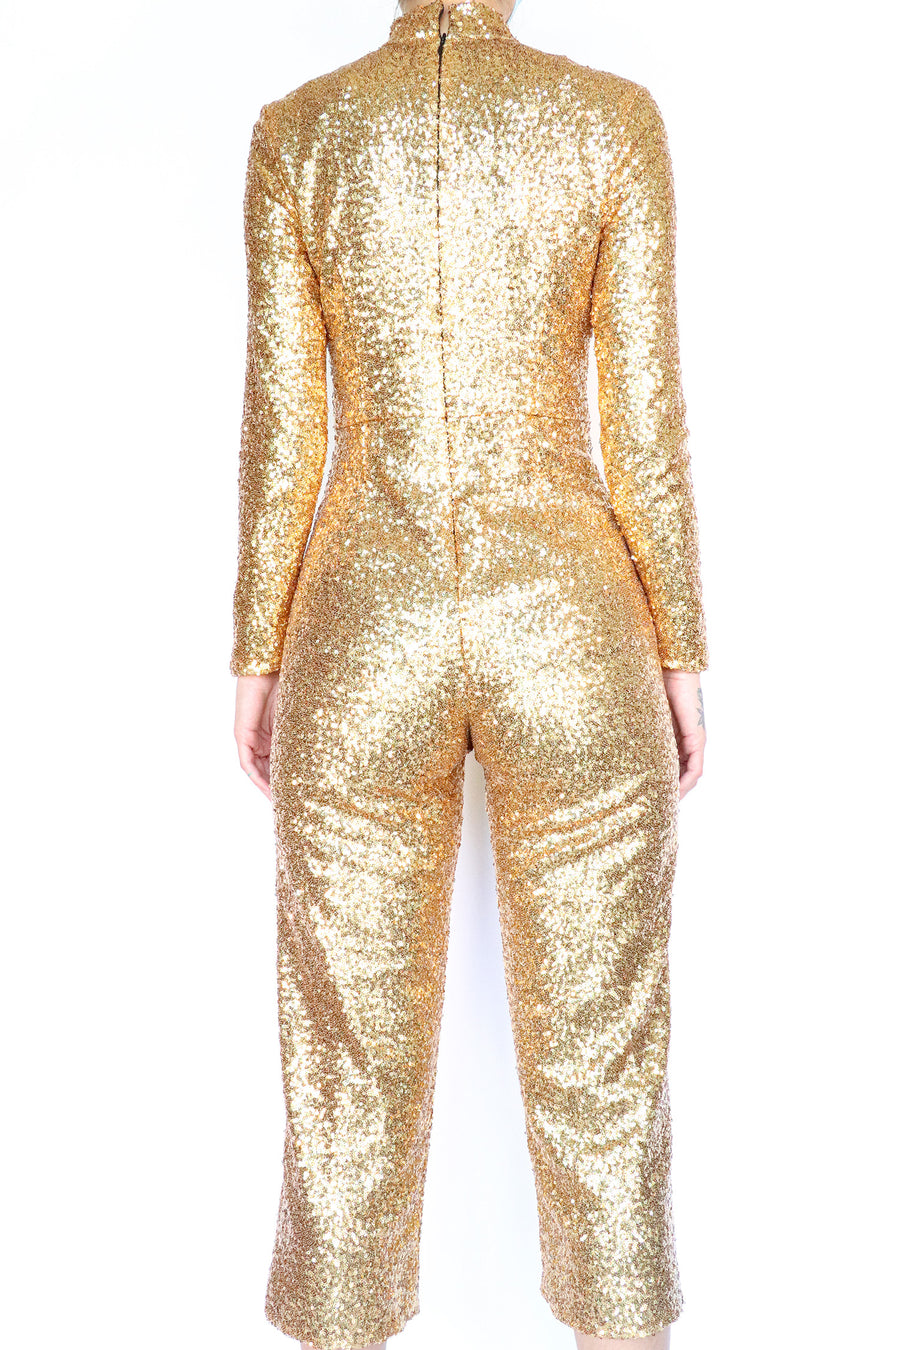 Halogen x Atlantic Pacific - Gold Sequin Jumpsuit - 2